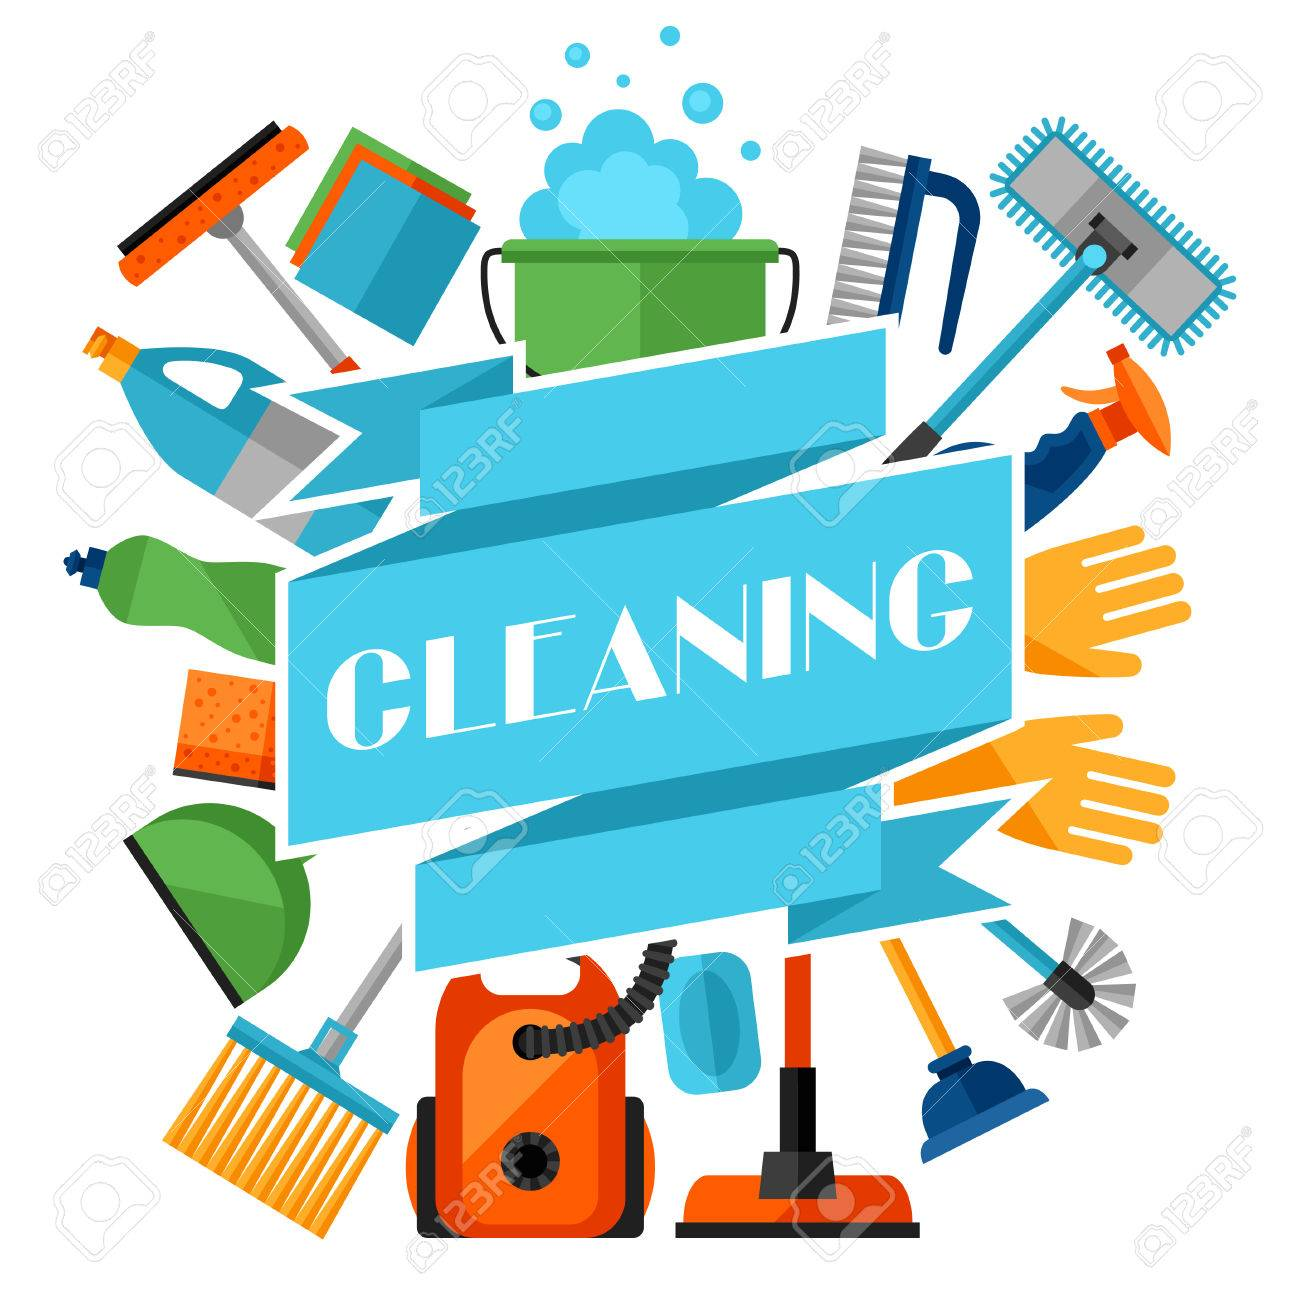 housekeeping background cleaning icons image can be used housekeeping background cleaning icons image can be used on advertising booklets banners